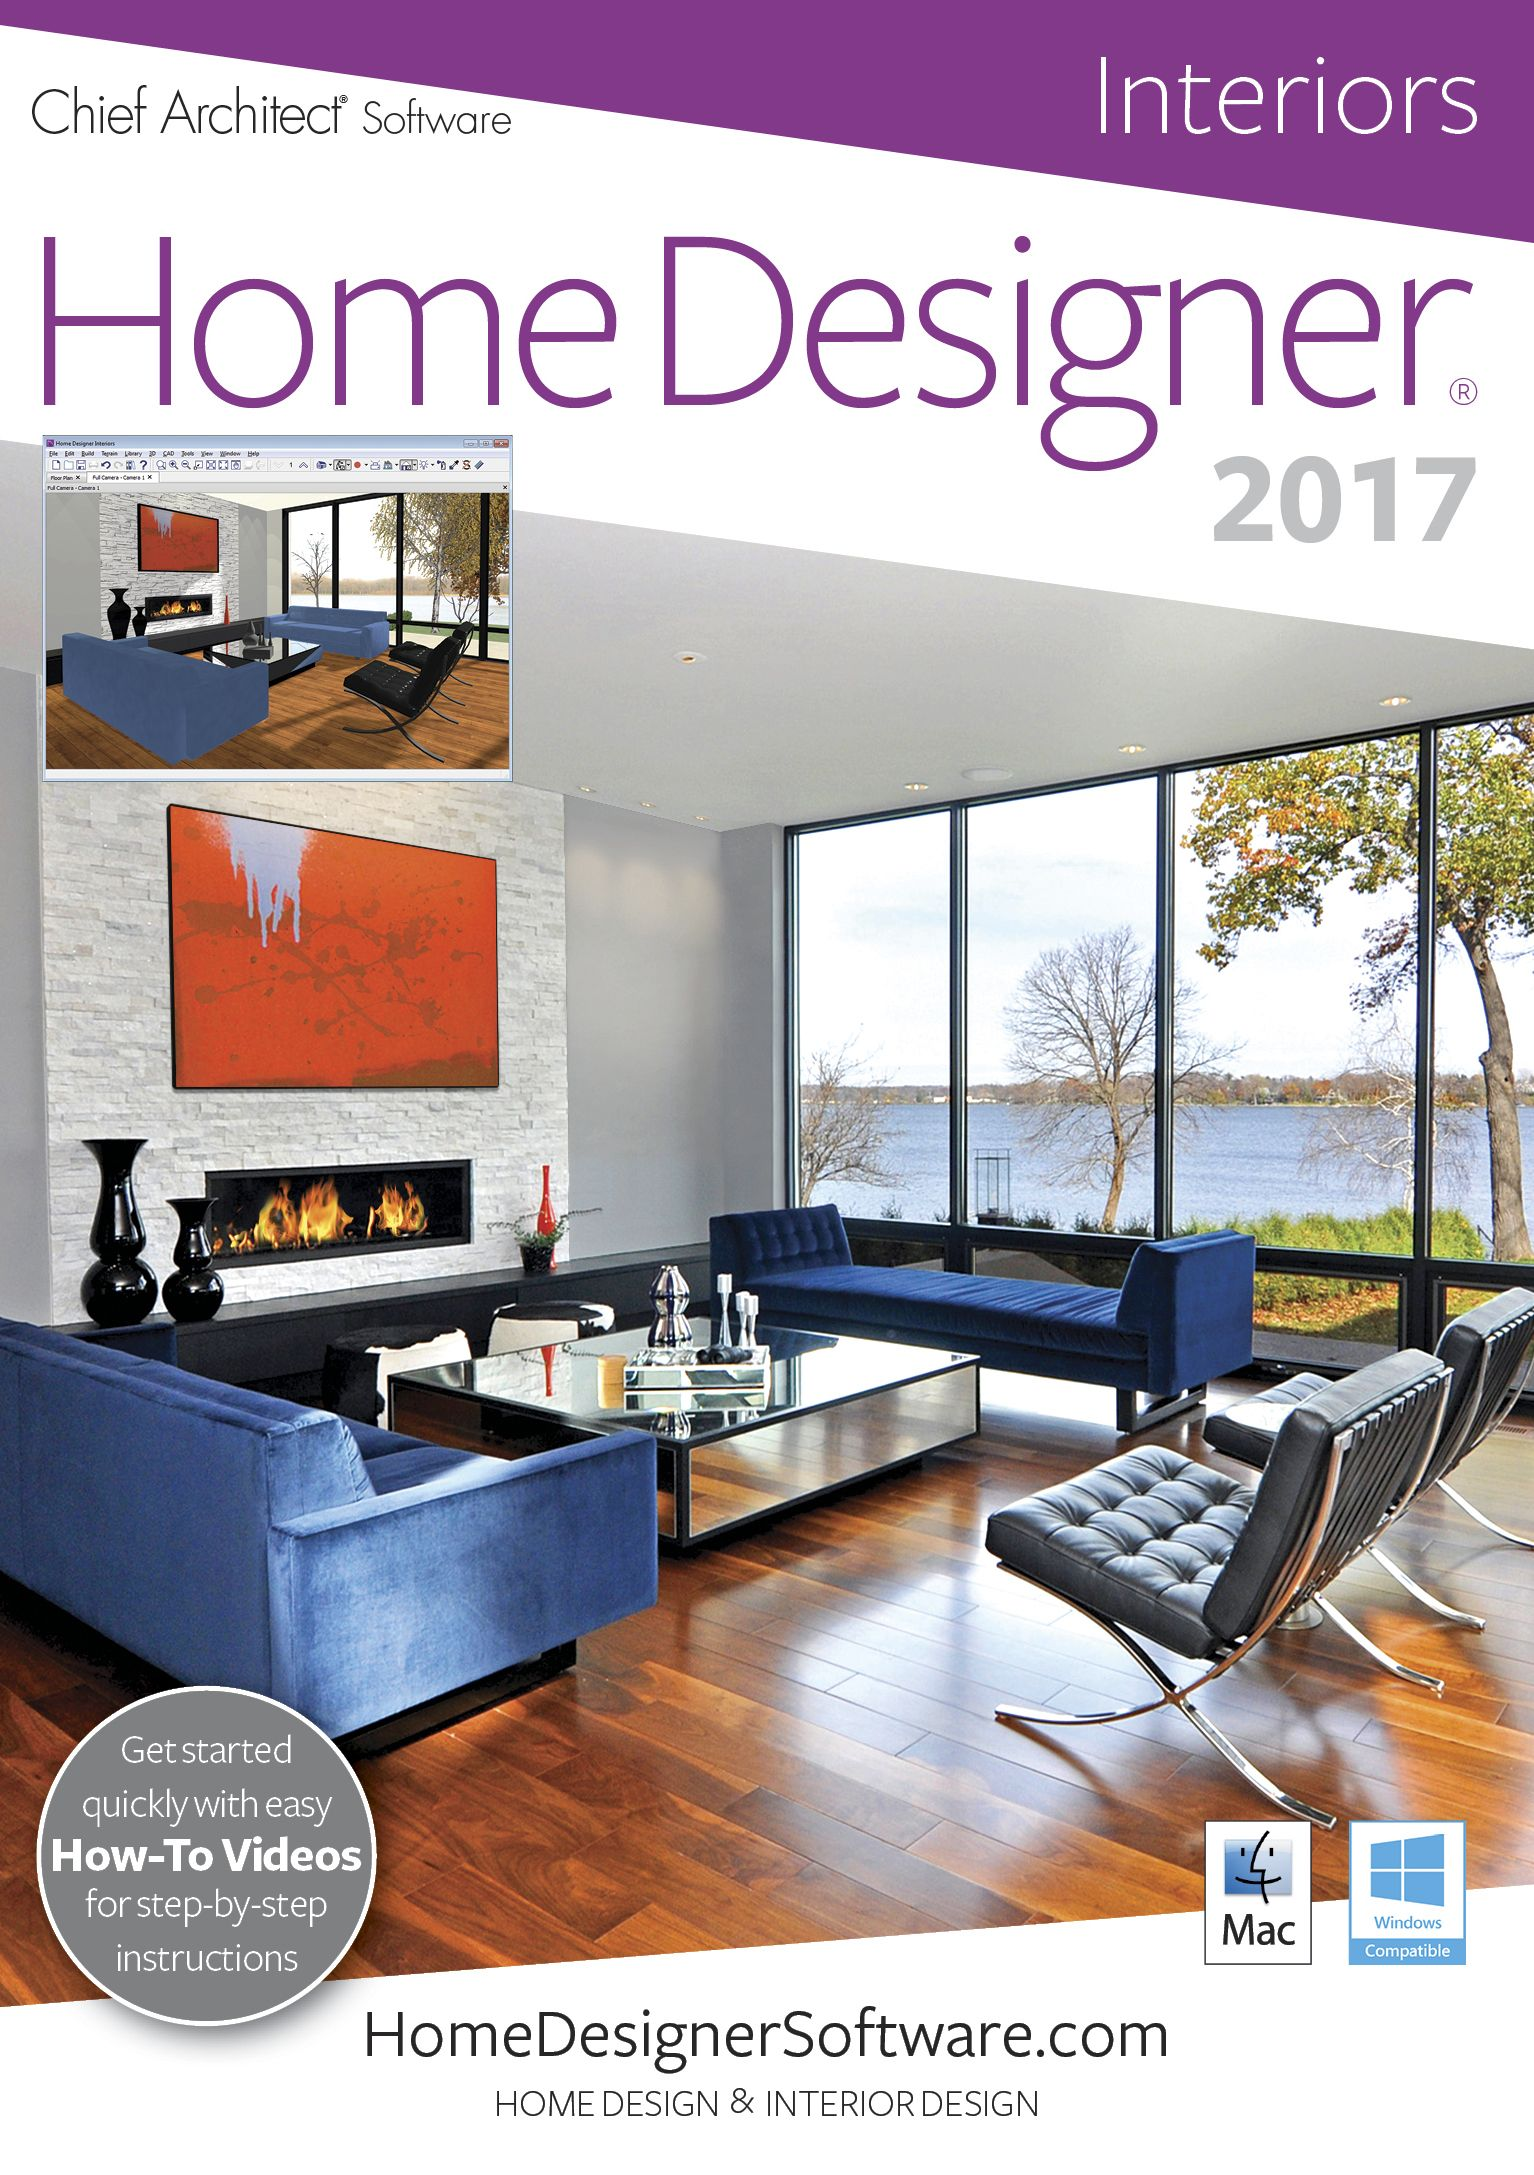 Pin By Becky Knight On Good To Know Interior Design Software